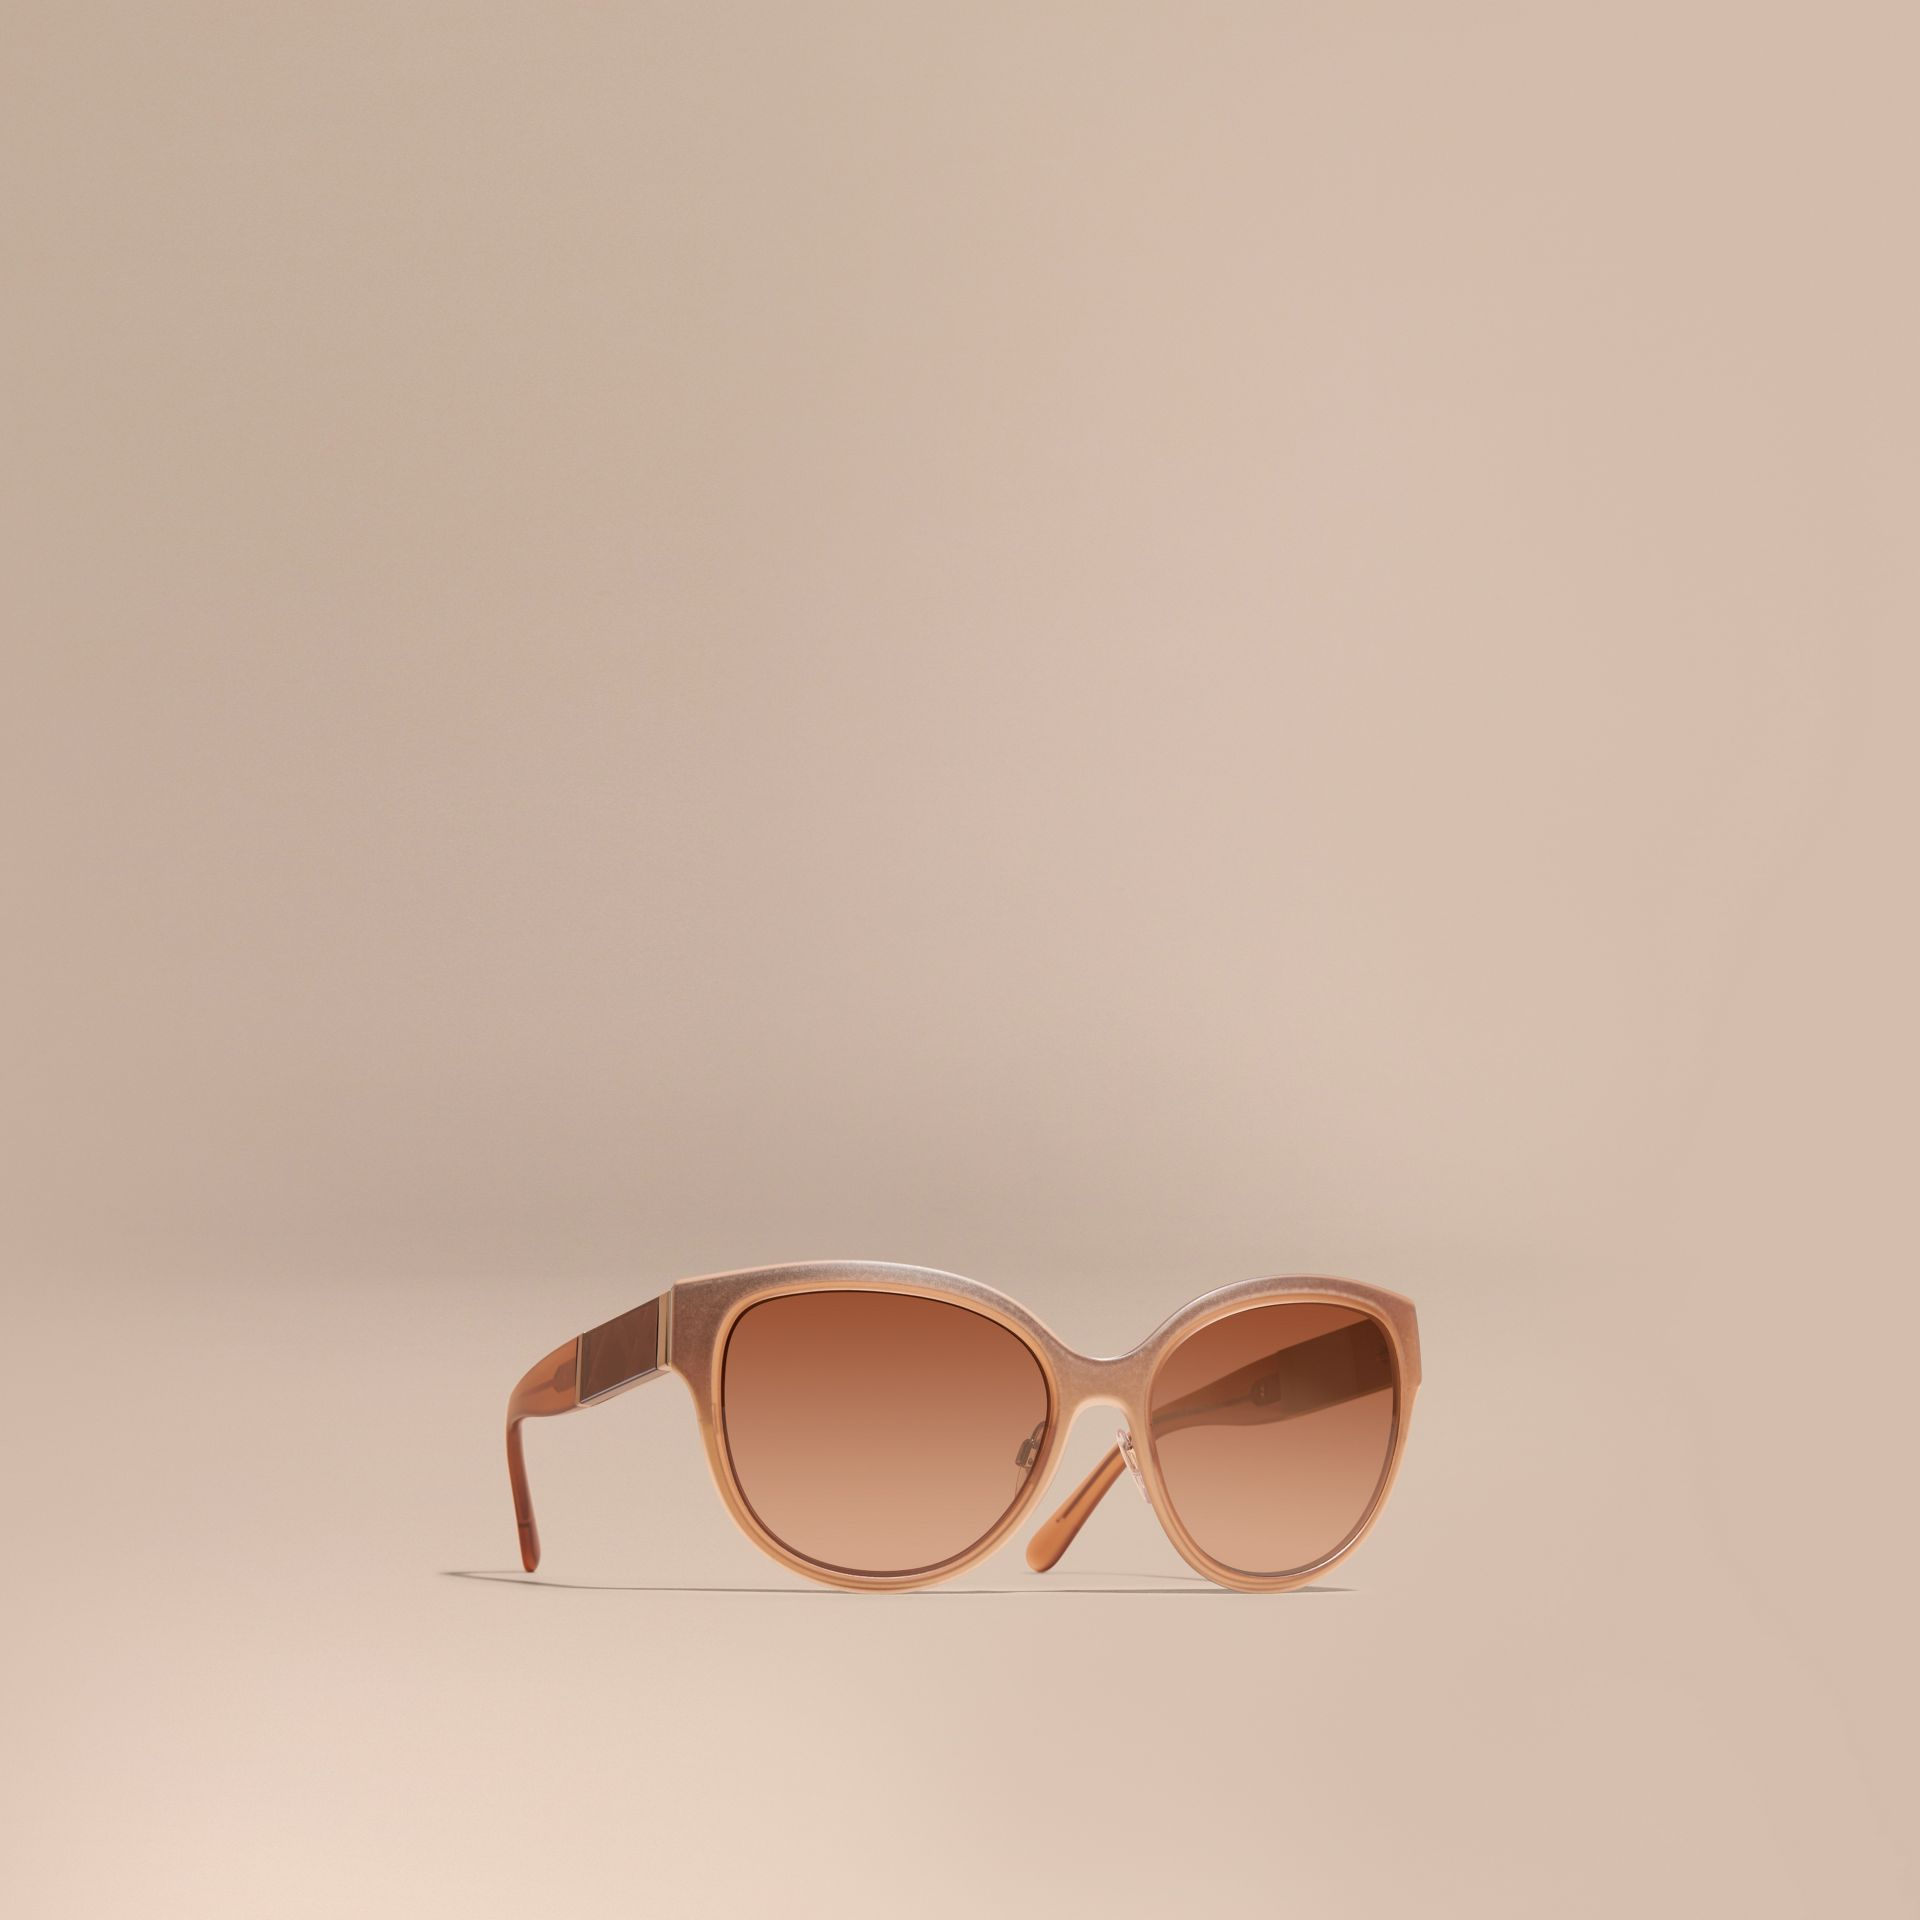 Check Detail Round Cat-eye Sunglasses Light Wood - gallery image 1